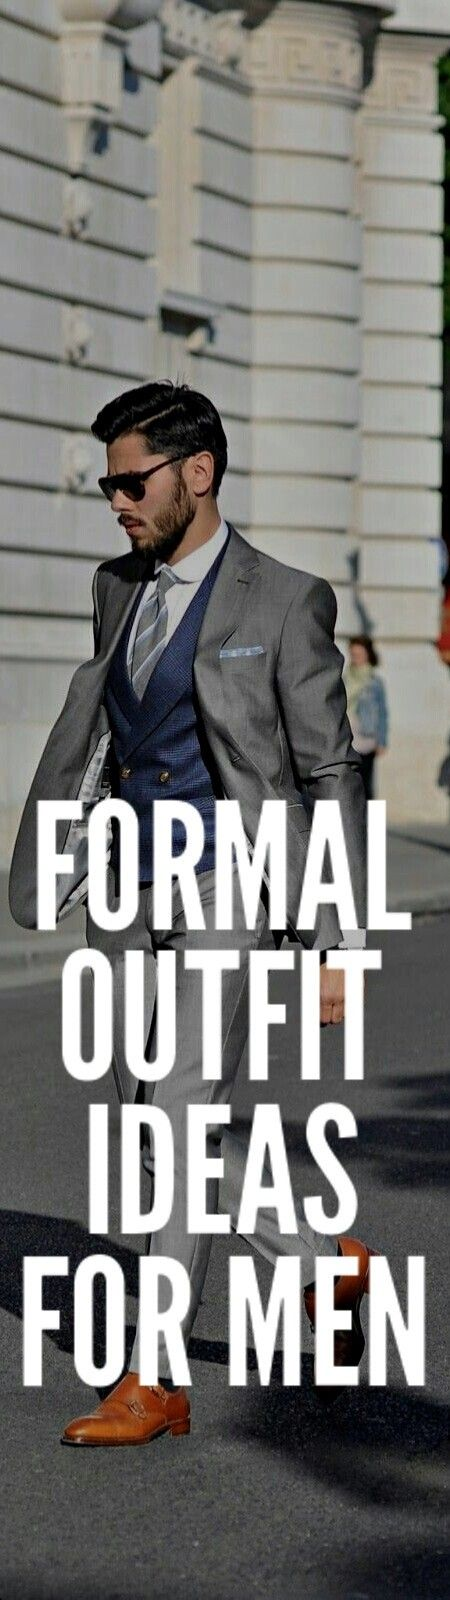 FORMAL outfits for men #mensfashion #streetstyle